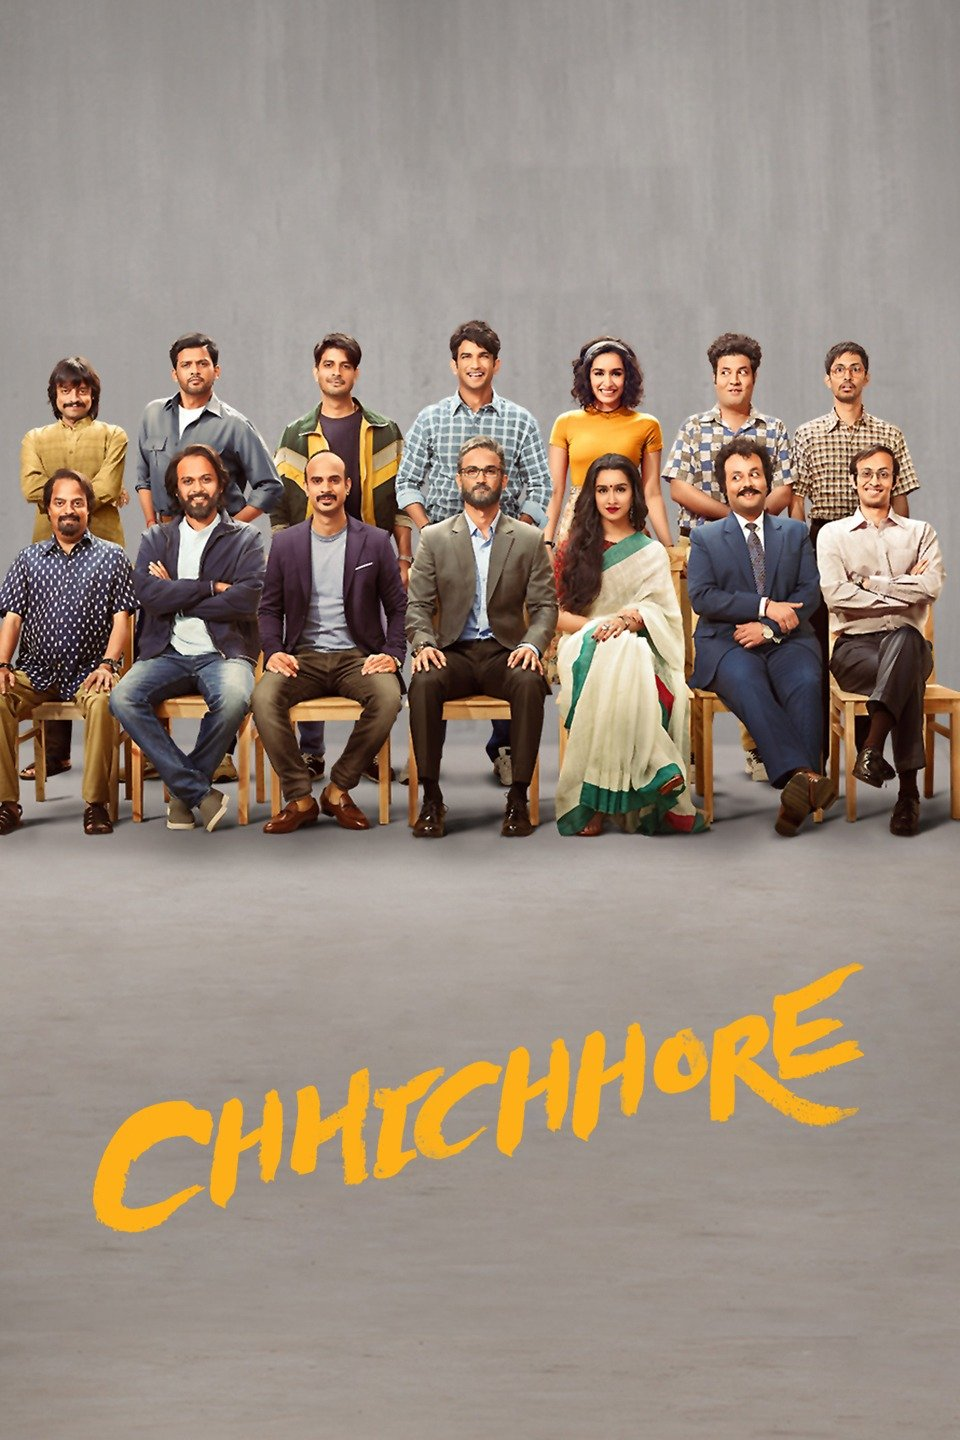 Chhichhore (2019) Hindi PreDVD/HDCam 720p/480p H264 AAC ~ 1.19GB/700MB/400MB | Download | Watch Online | [G-Drive]